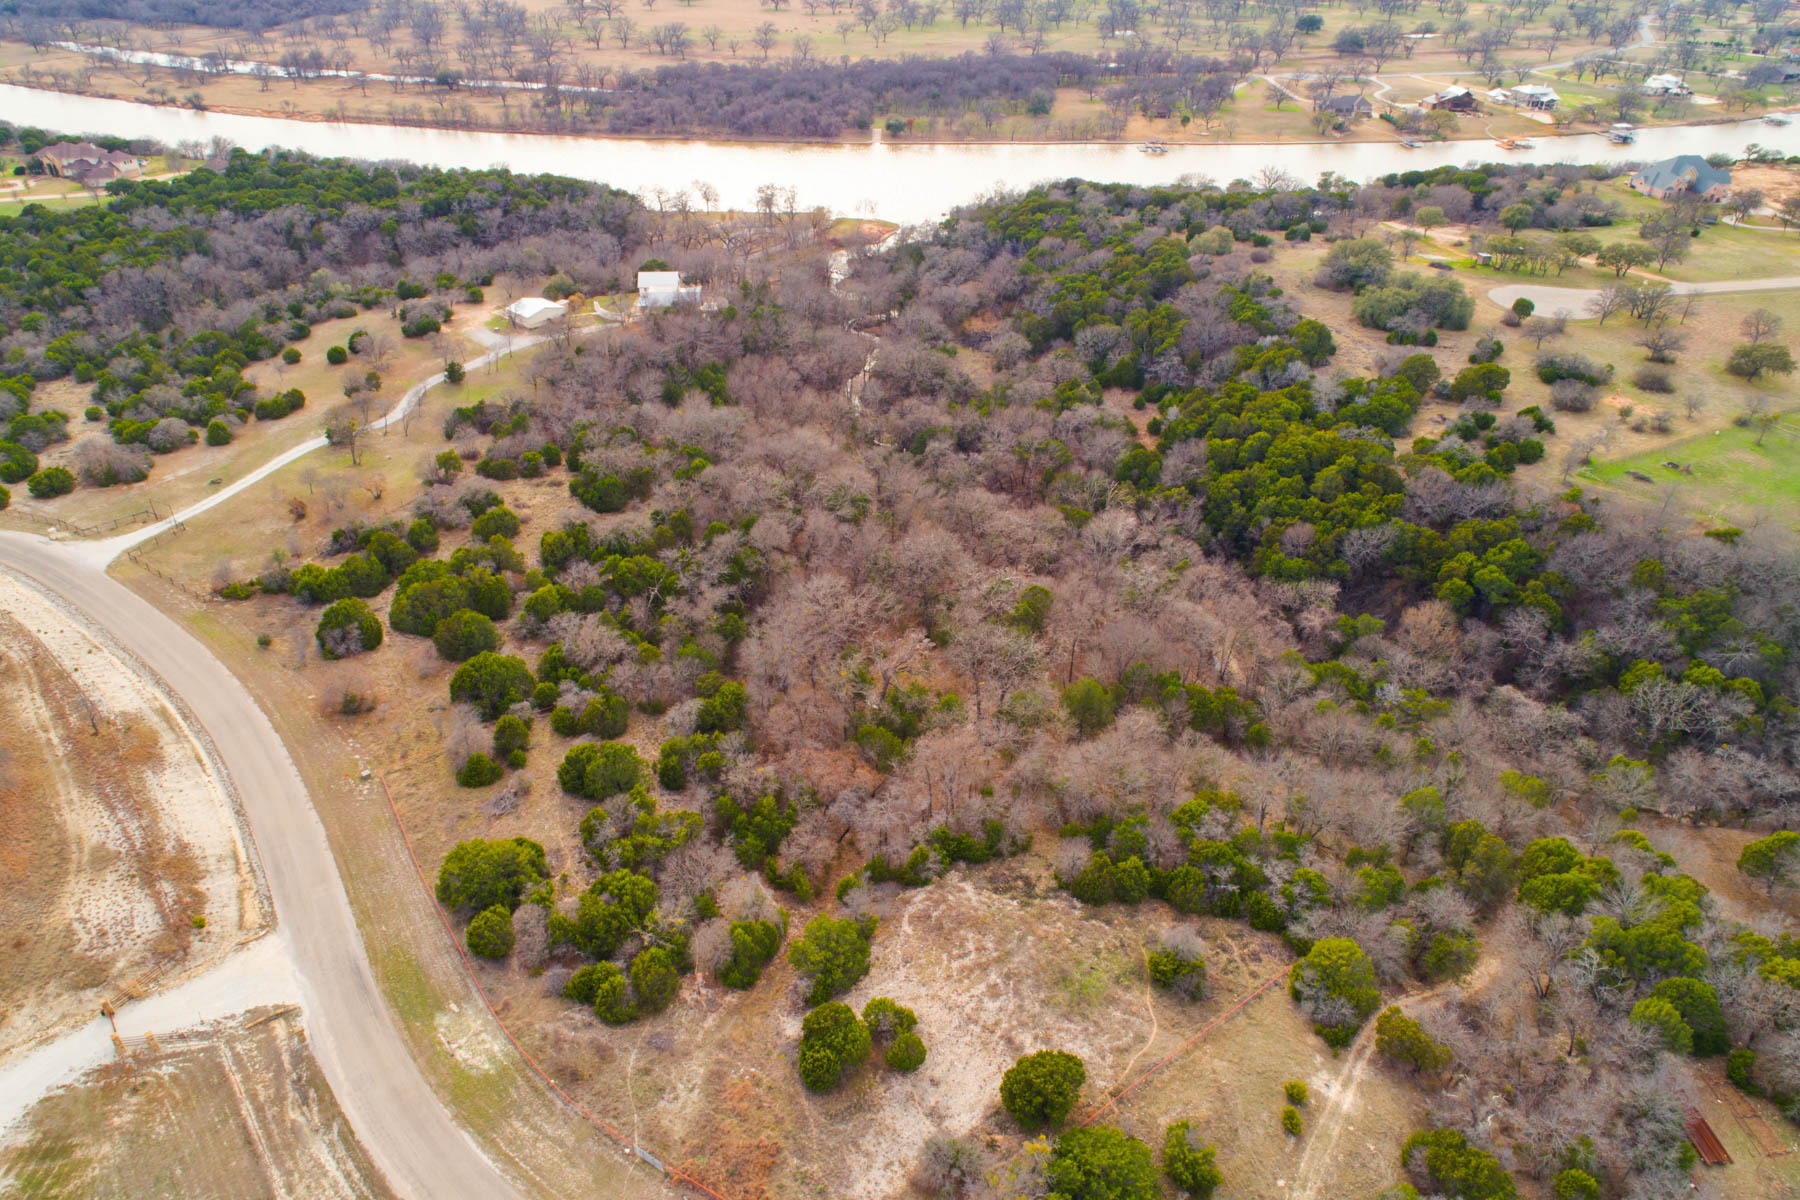 Land for Sale at Silverado On The Brazos 0 Lot 35 Cactus Rio Drive, Weatherford, Texas, 76087 United States